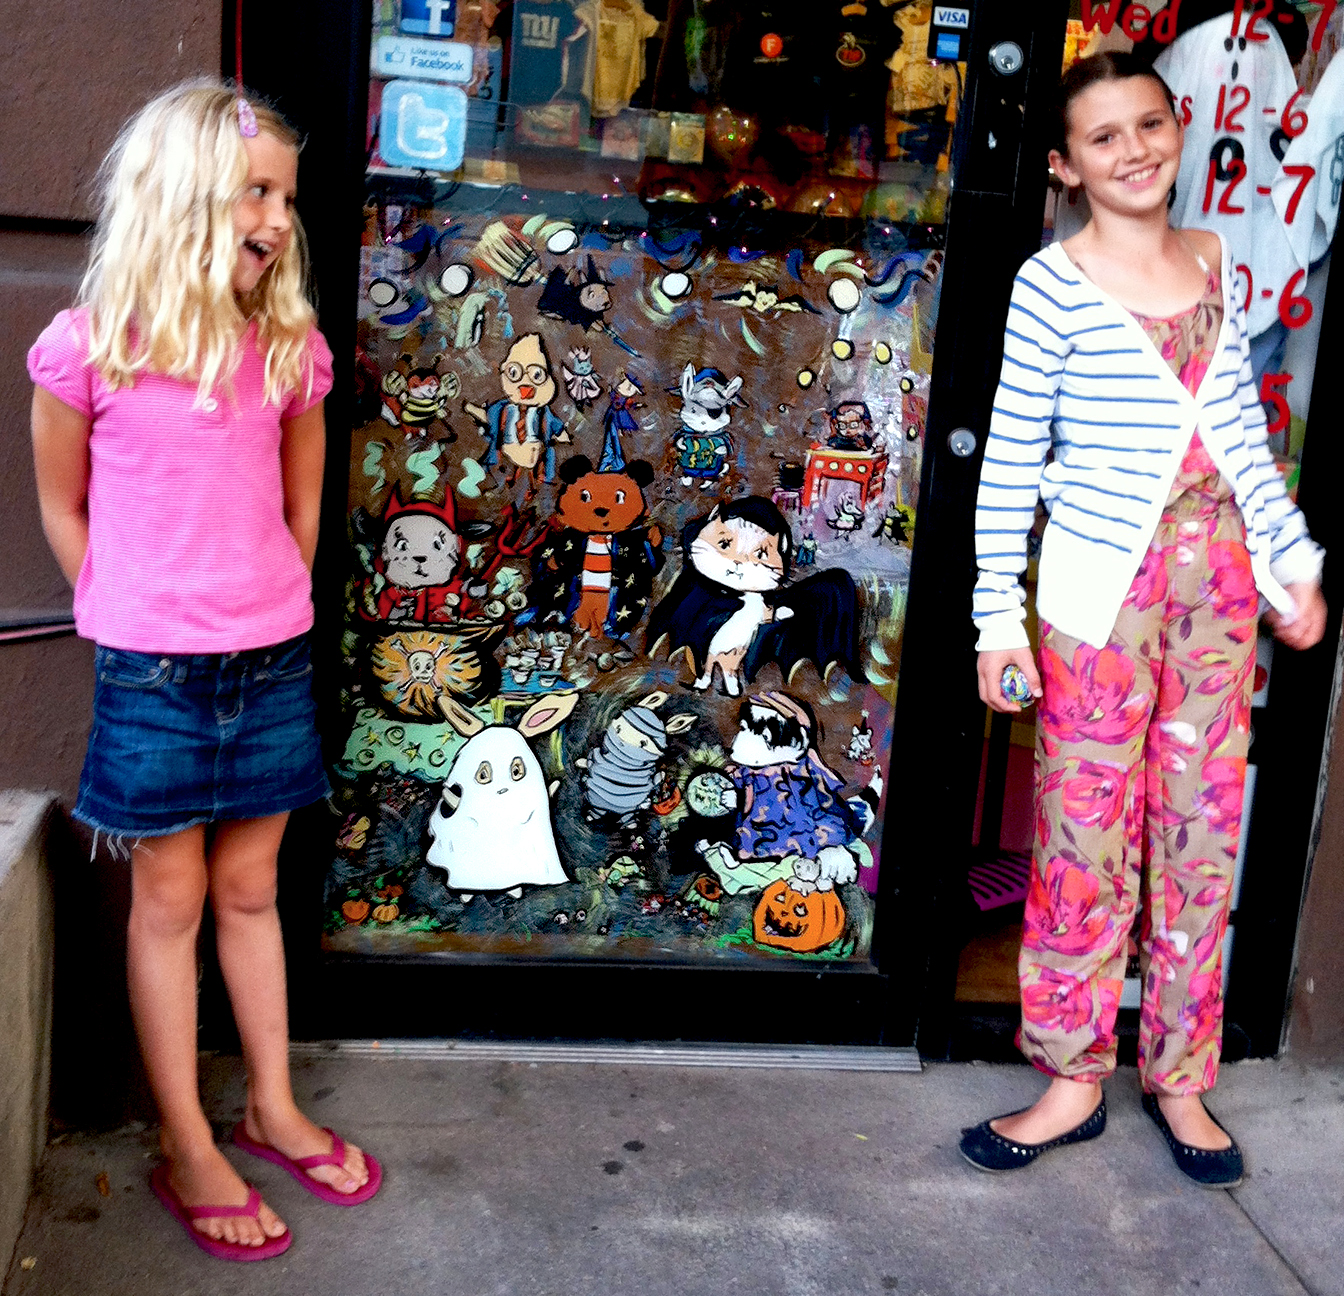 MnO w-my_Halloween_toy_store_door_Allyn_Howard.jpg